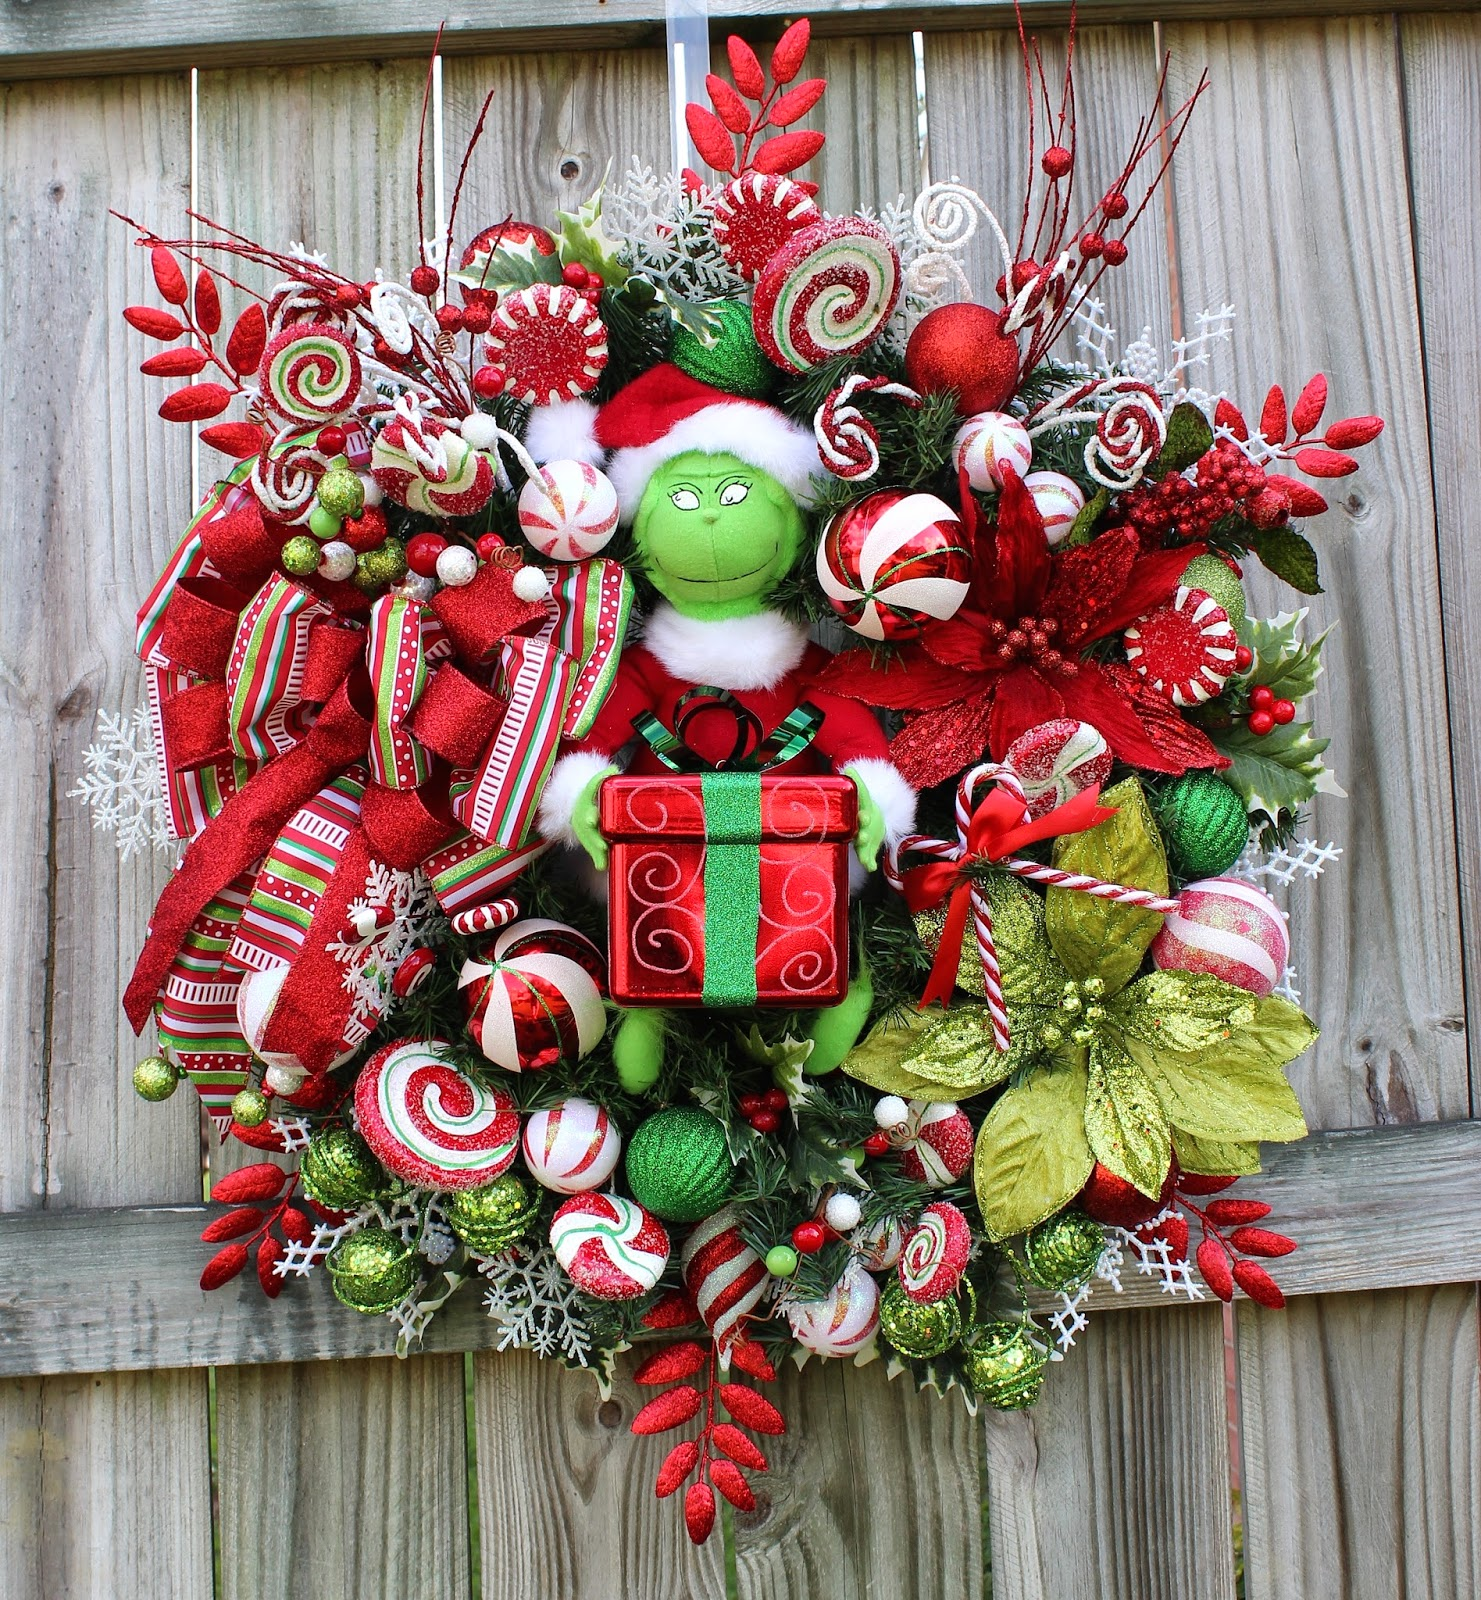 Deluxe Grinch Christmas Wreath